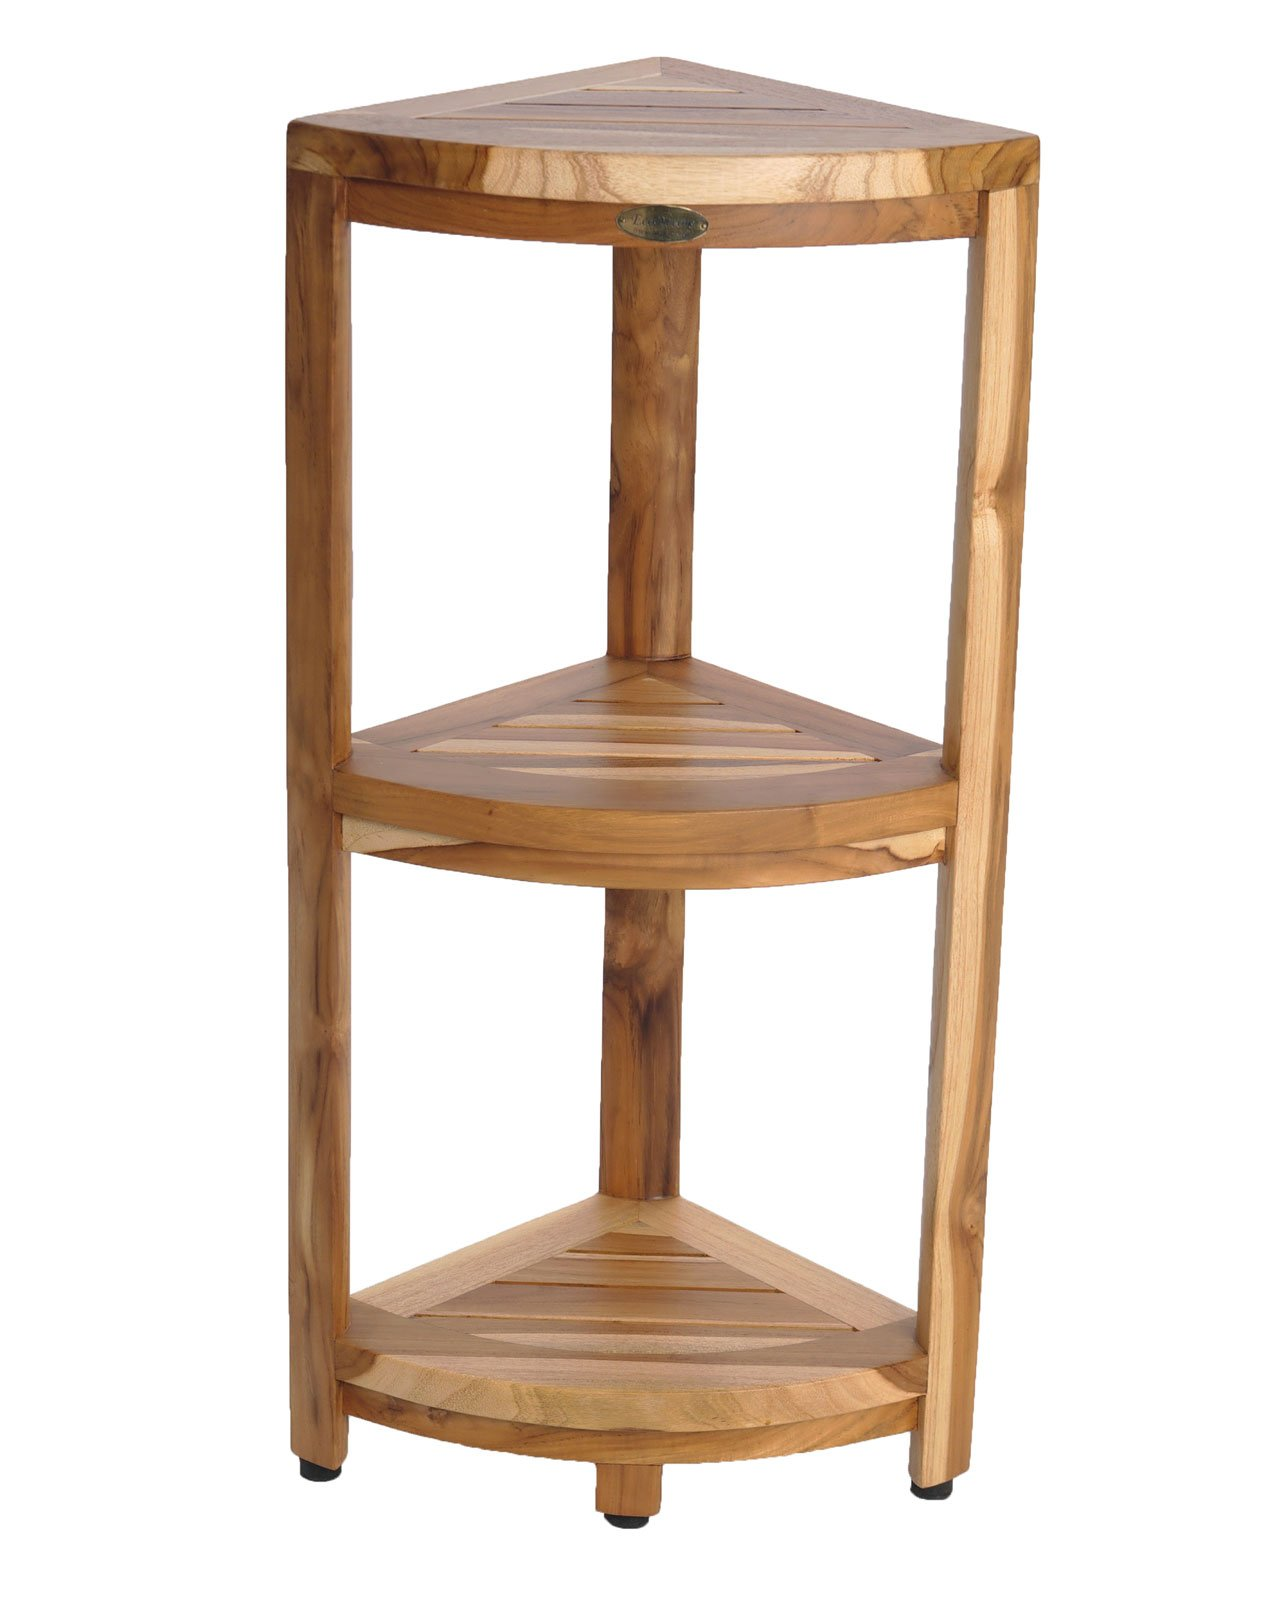 New- EcoDecors EarthyTeak™ FULLY ASSEMBLED 3-Tier Compact Teak Corner Shower Shelf- Shower Storage